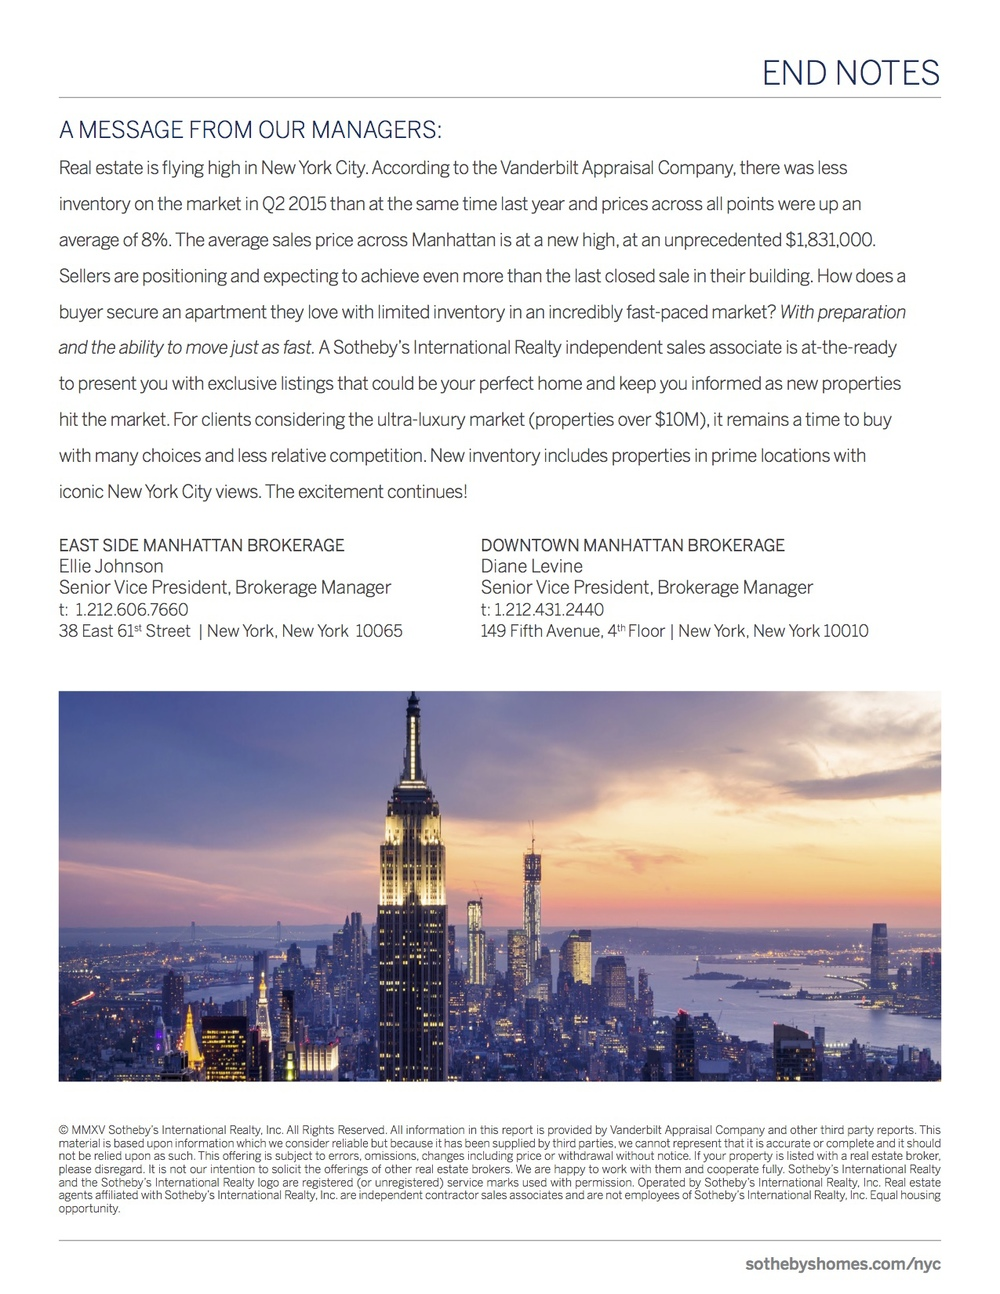 SothebysInternationalRealty_Manhattan_MarketReport_2Q2015_10.jpg